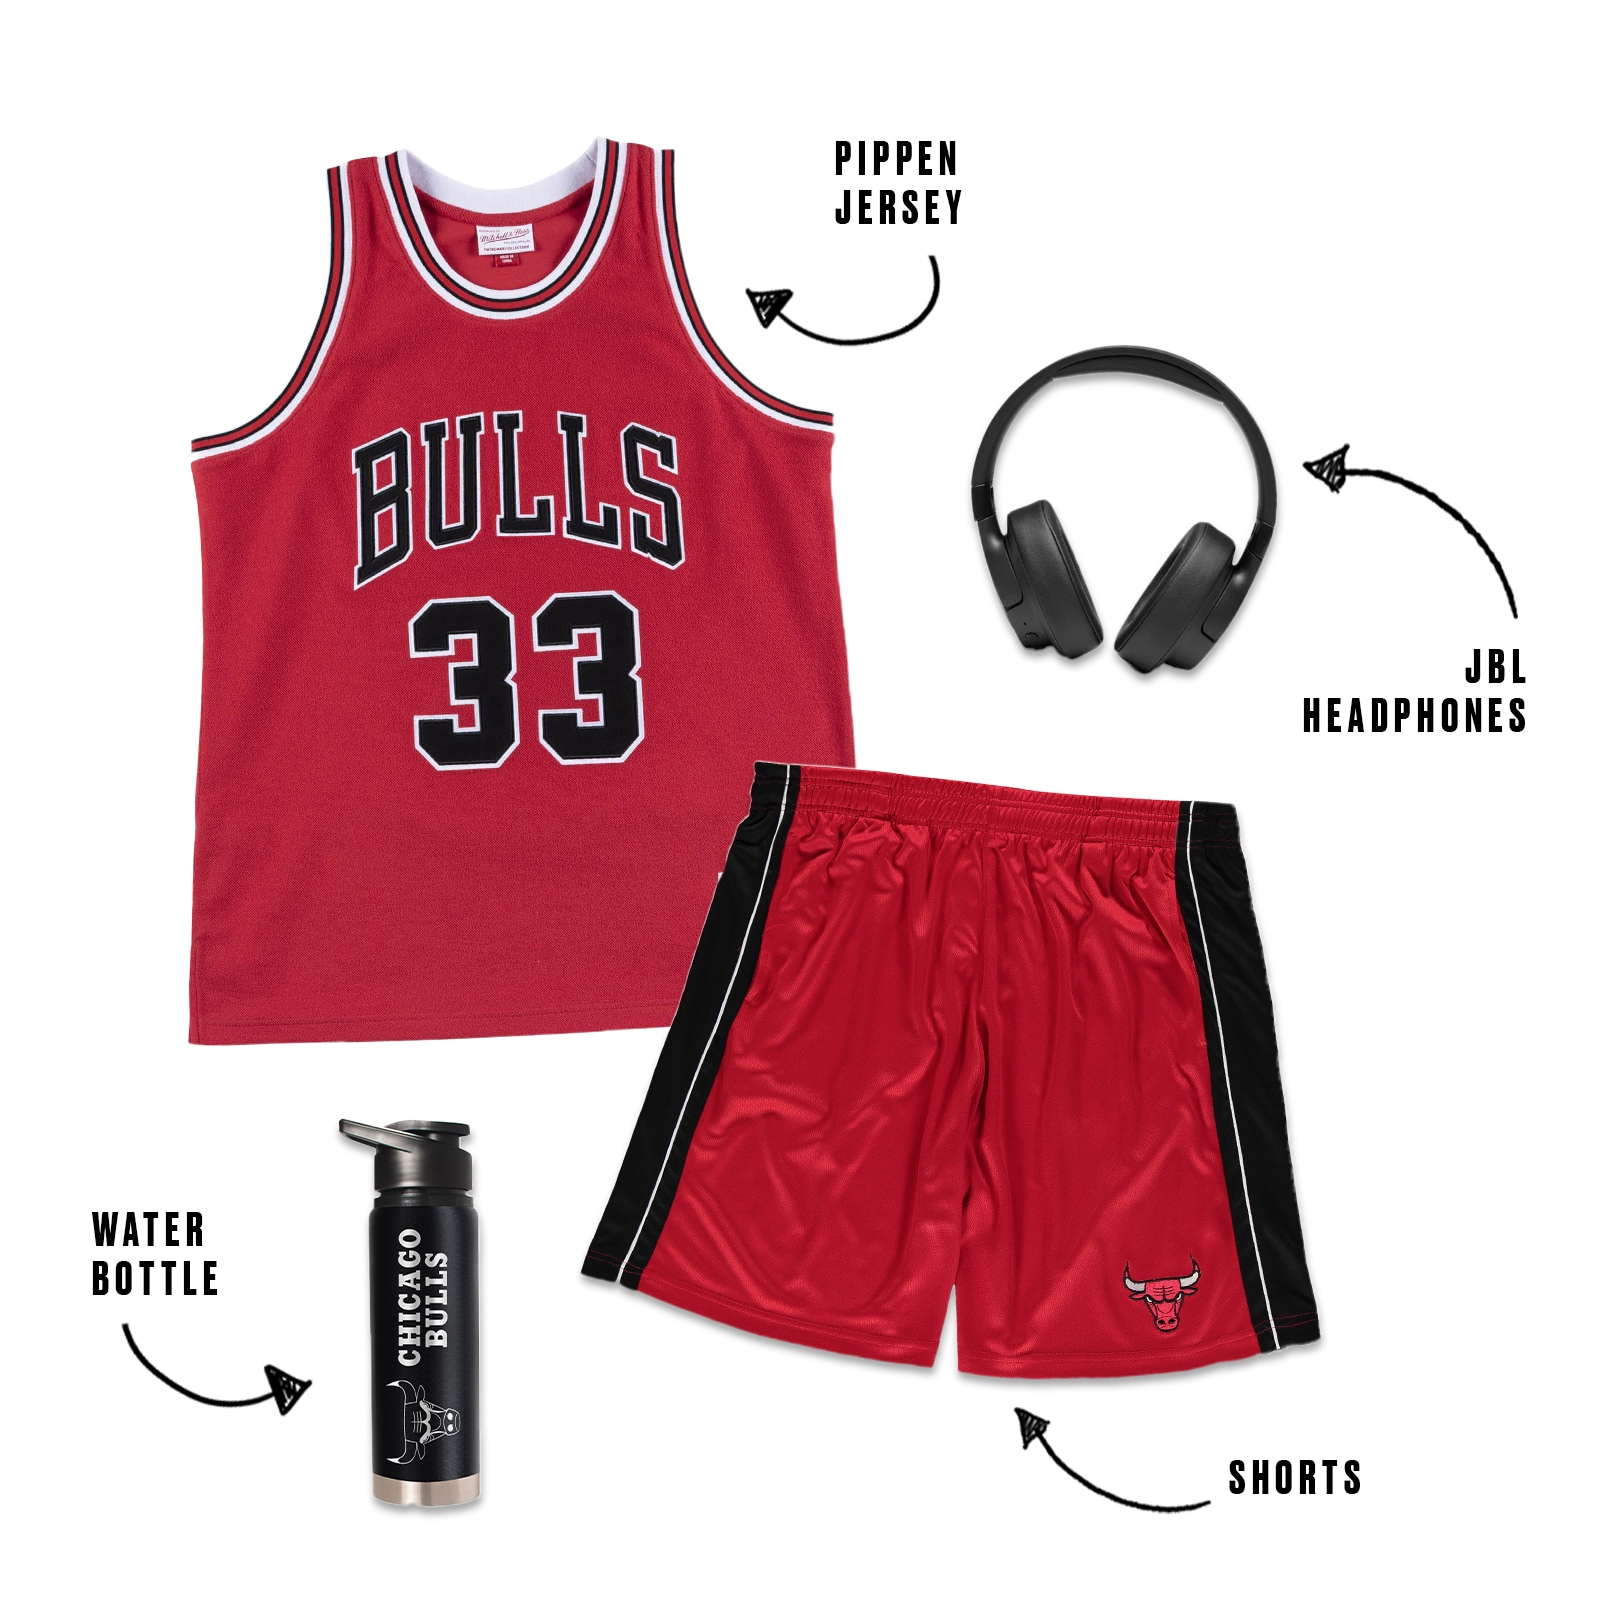 Red Pippen jersey with headphones, shots and a Bulls water bottle